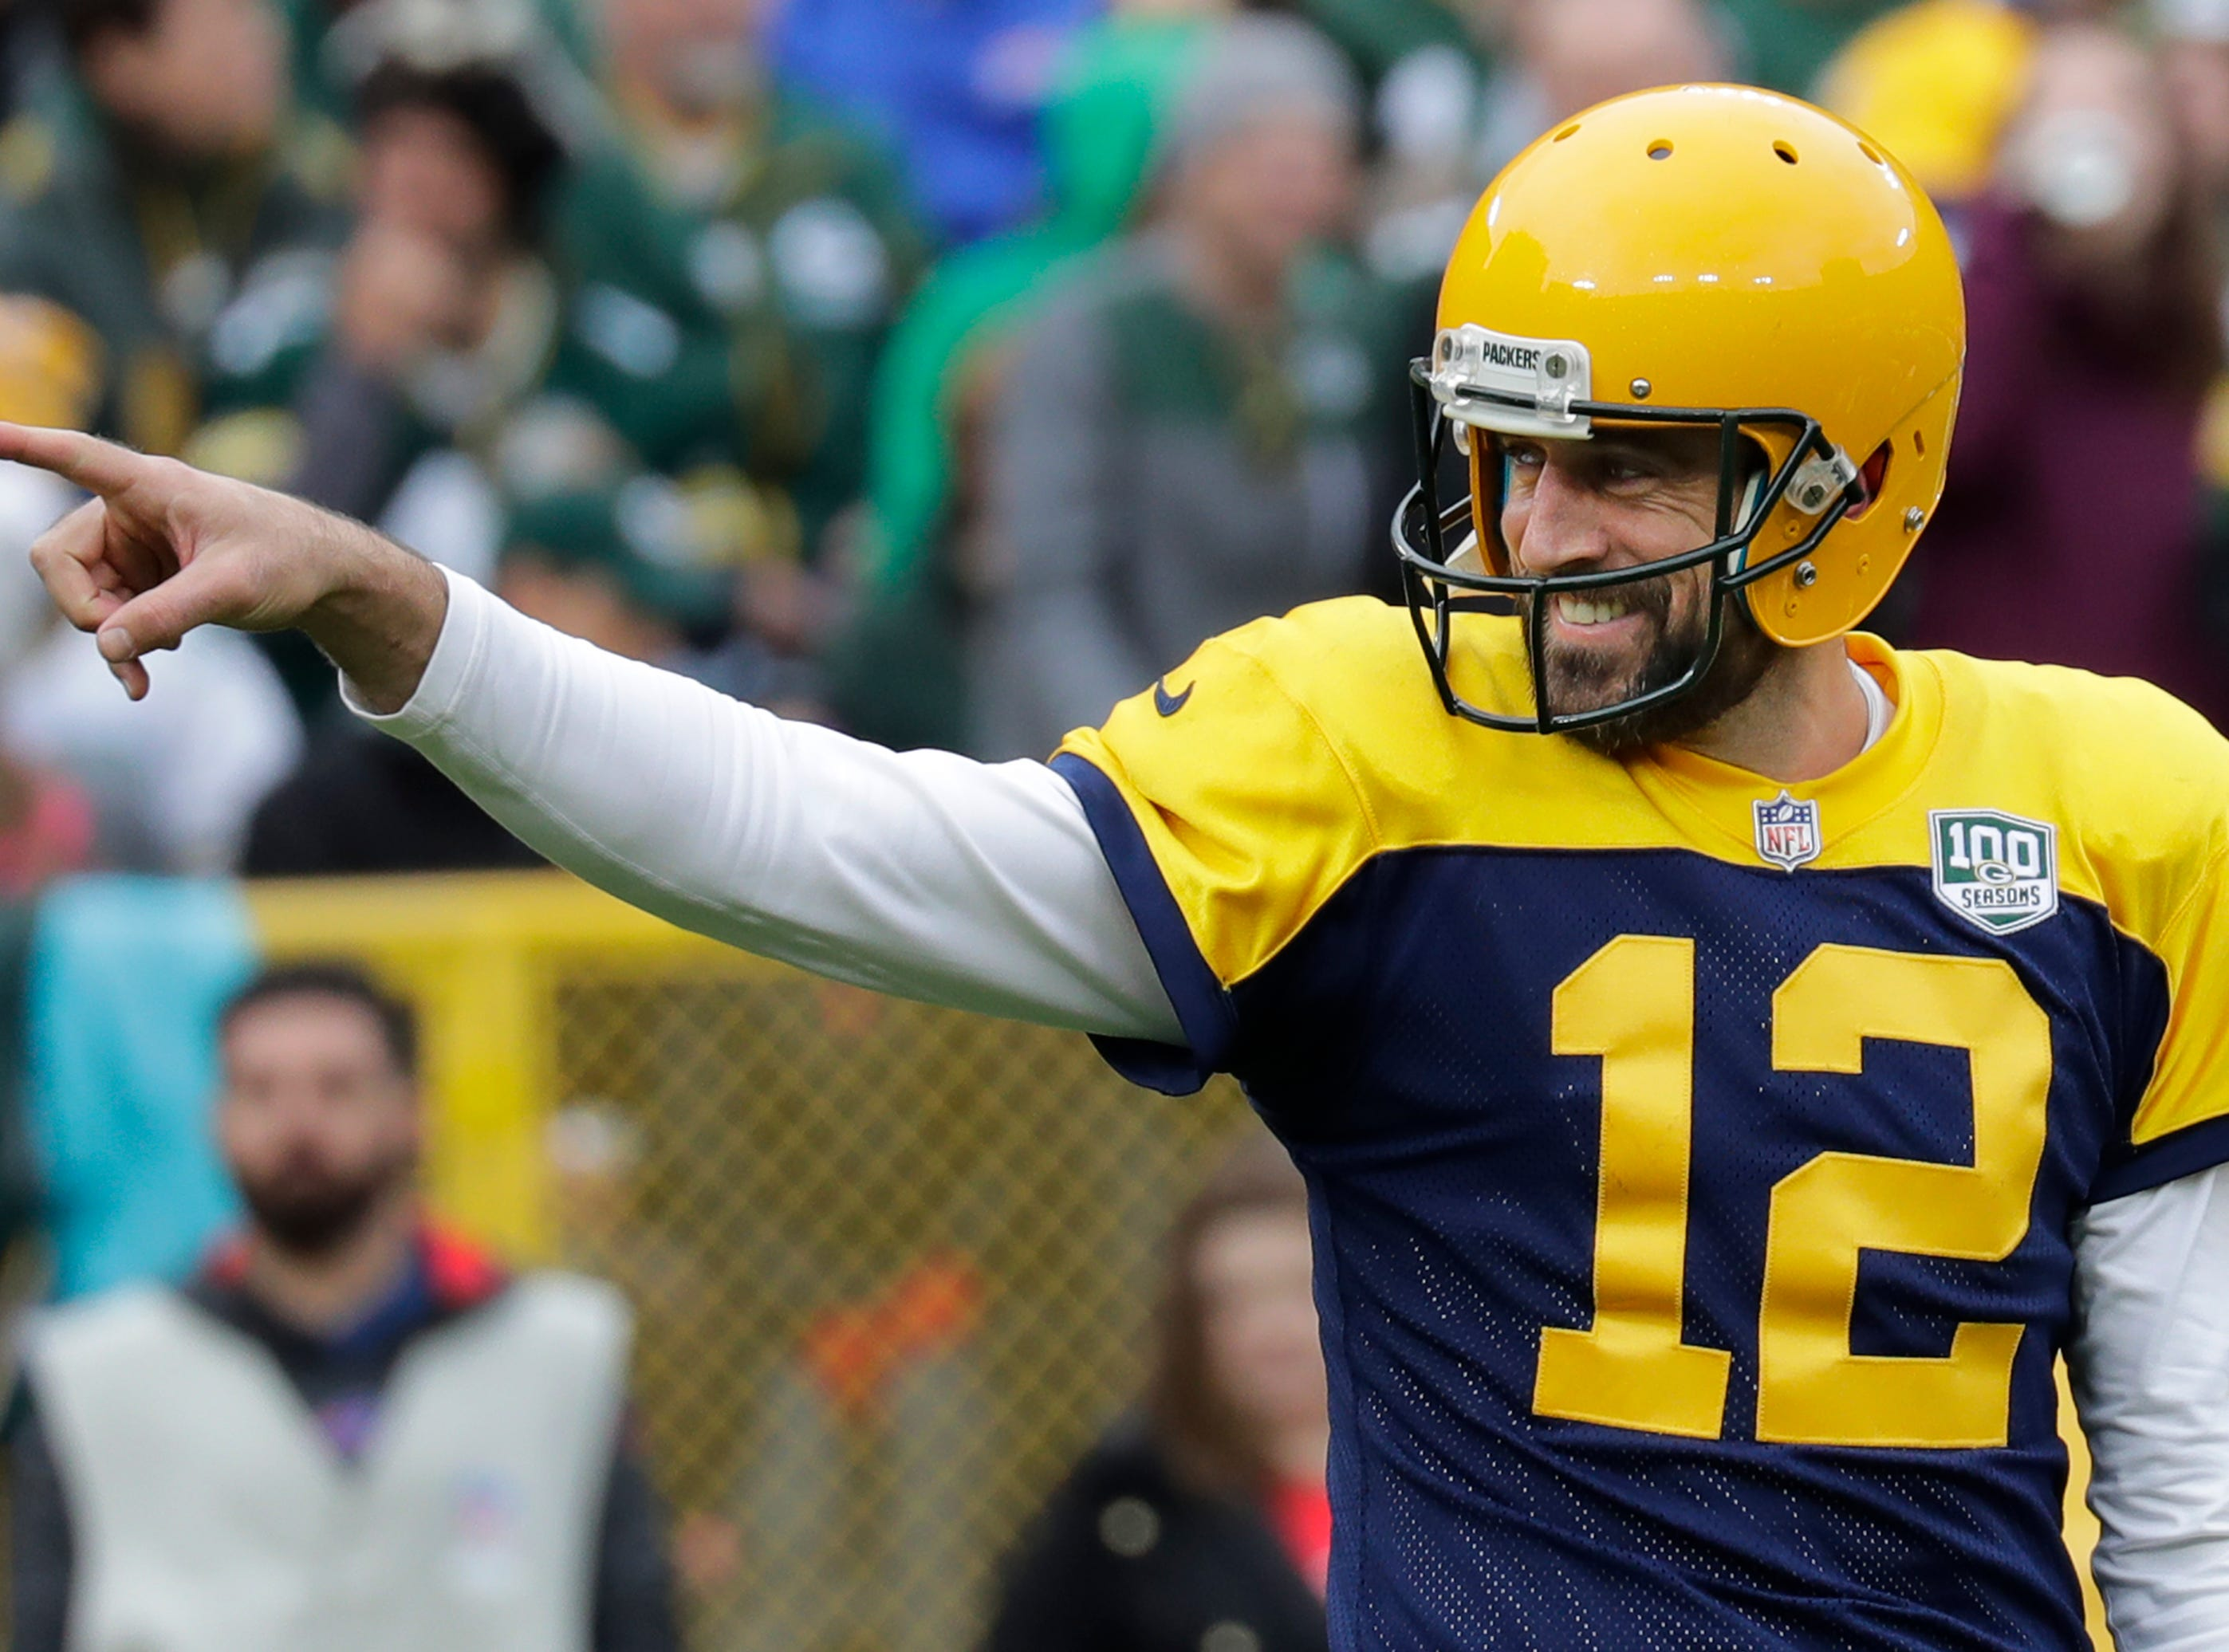 Green Bay Packers quarterback Aaron Rodgers (12) smiles as he points to a vocal group of fans that caught his attention late in the fourth quarter against the Buffalo Bills during their football game Sunday, Sept. 30, 2018, at Lambeau Field in Green Bay, Wis. Dan Powers/USA TODAY NETWORK-Wisconsin